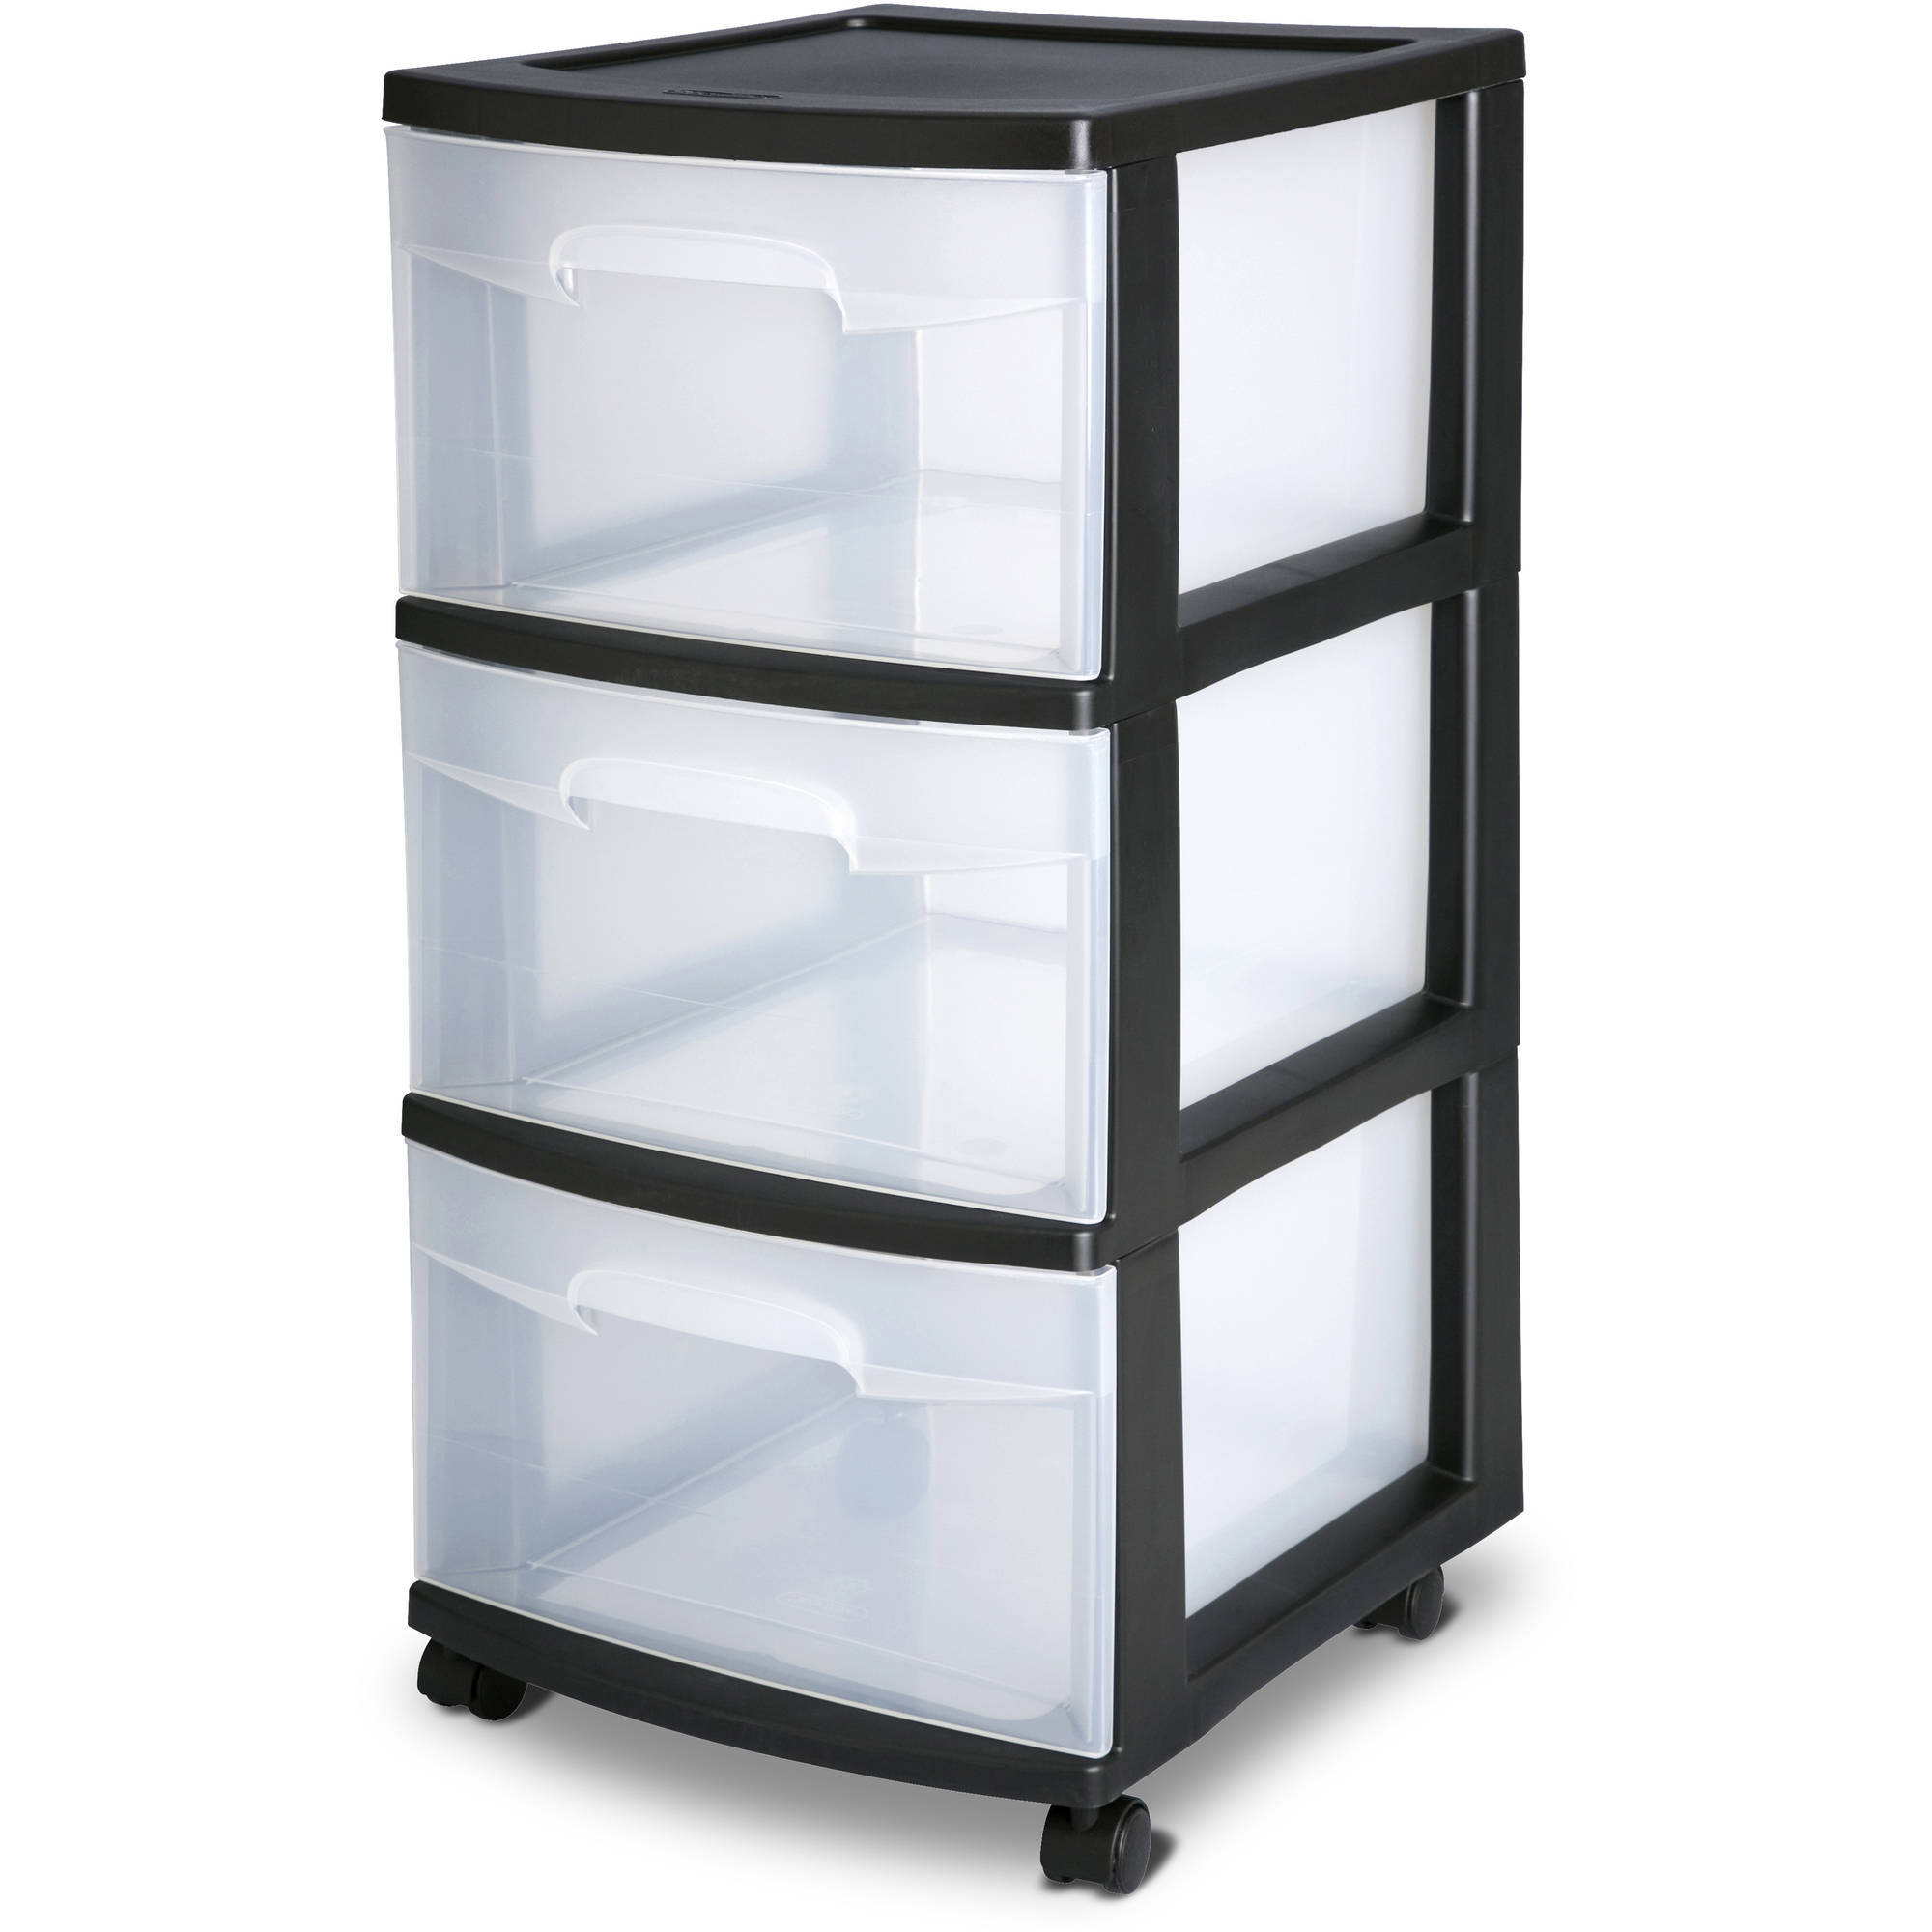 Sterilite 3 Drawer Cart- Black (Available in Case of 2 or Single Unit)